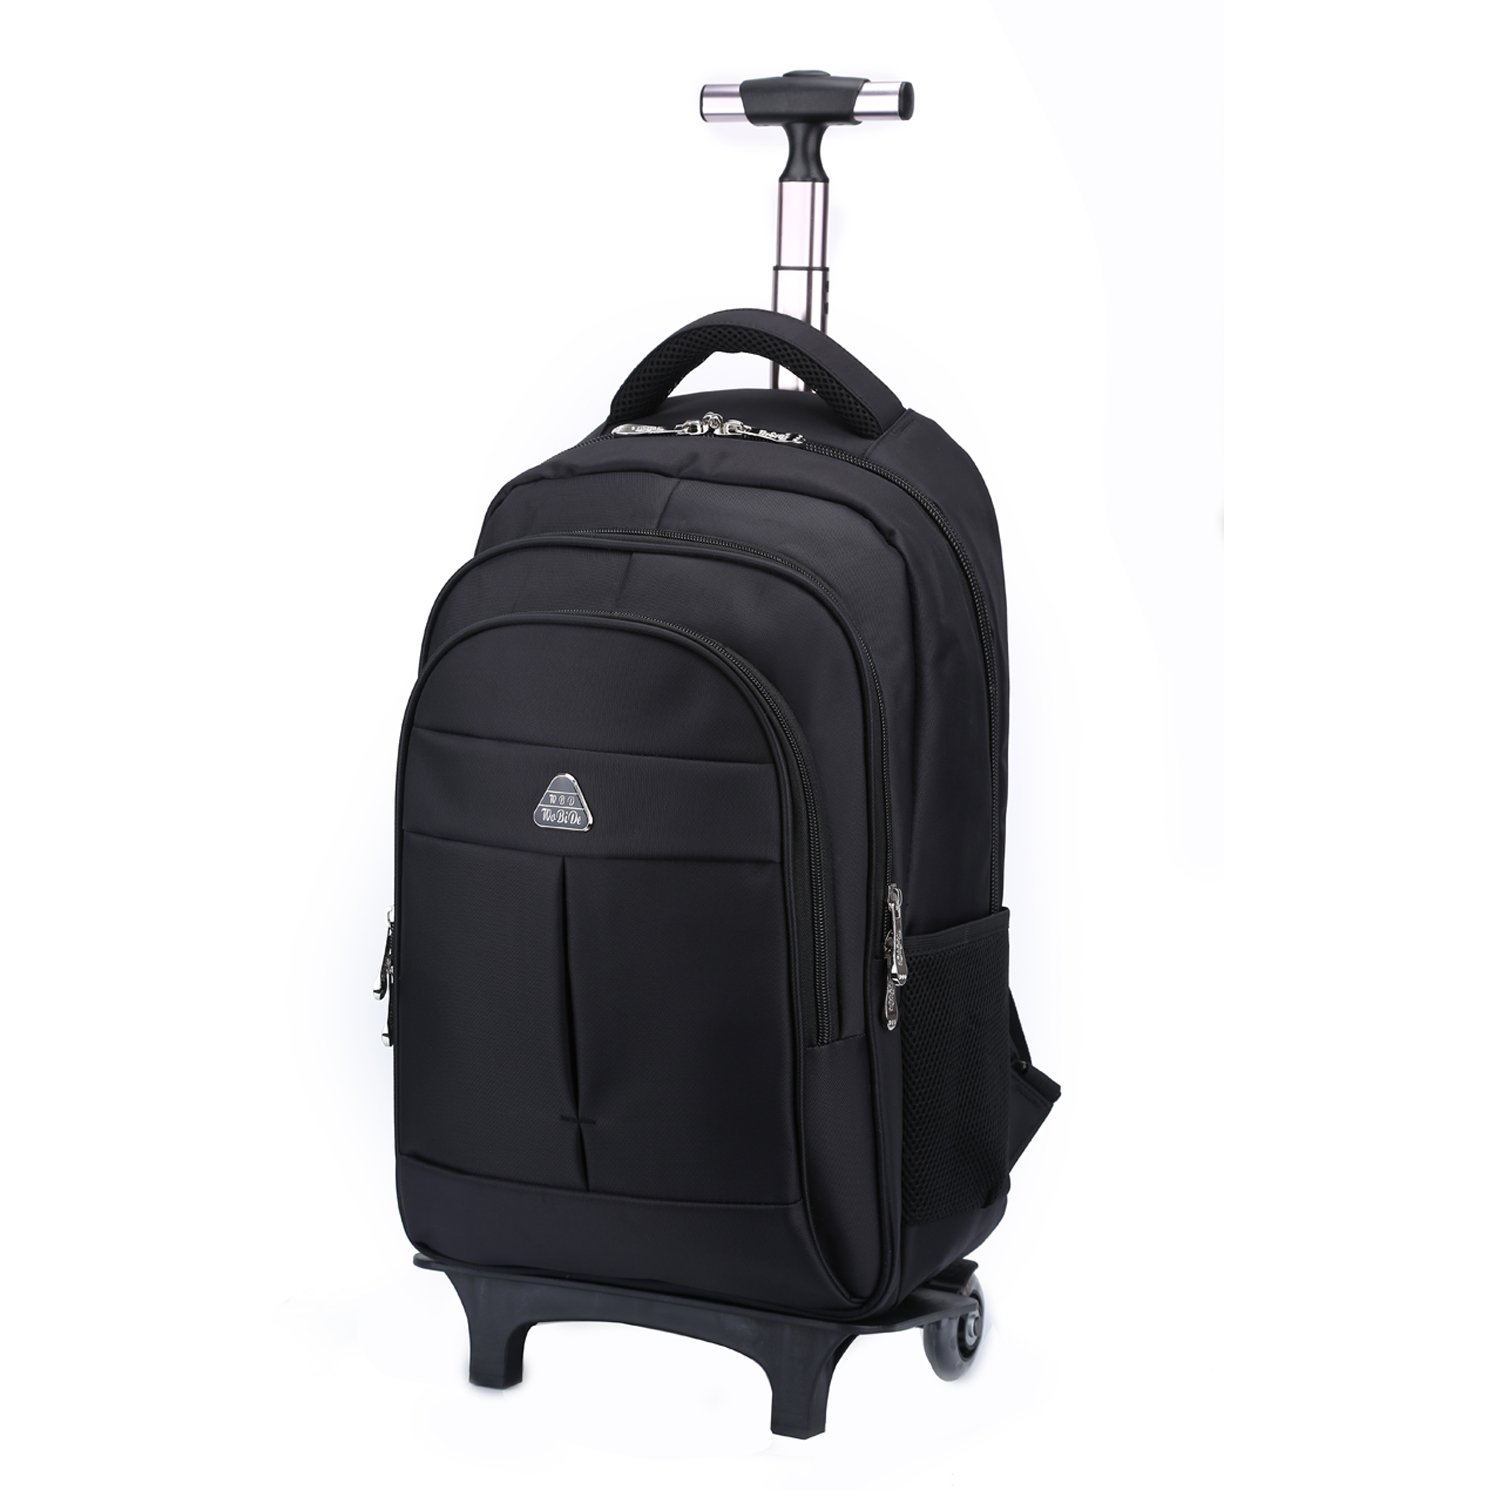 Little World IT Wheeled Backpack Lightweight Portable Carry-on Luggage with Removable Roller Frame for Traveling Business 16'' Laptop Black